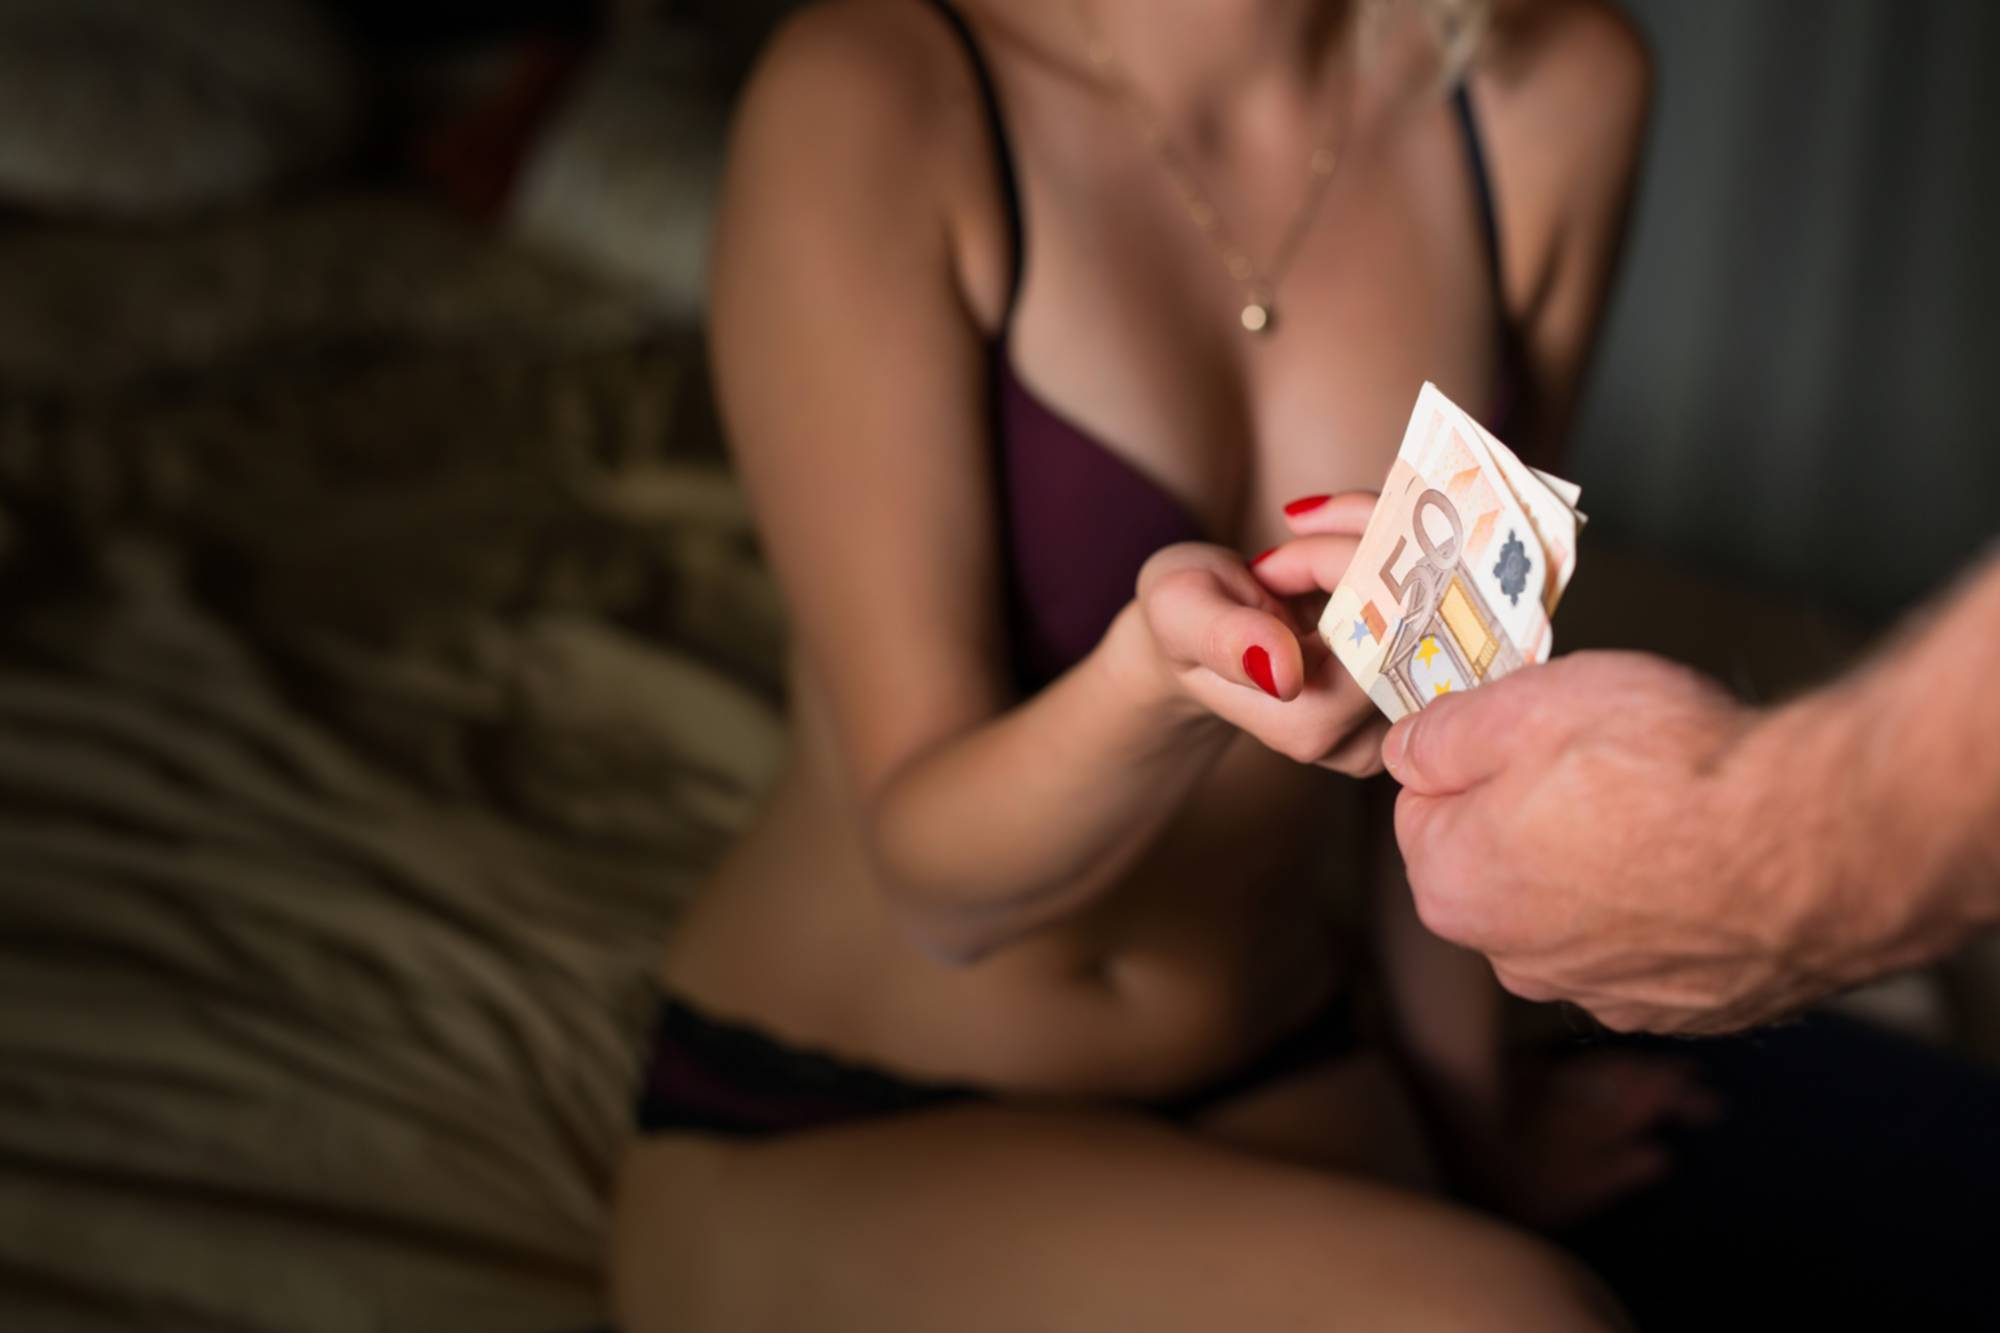 Escorts and prostitutes are completely different. Prostitution is illegal and you are paying for a single encounter.